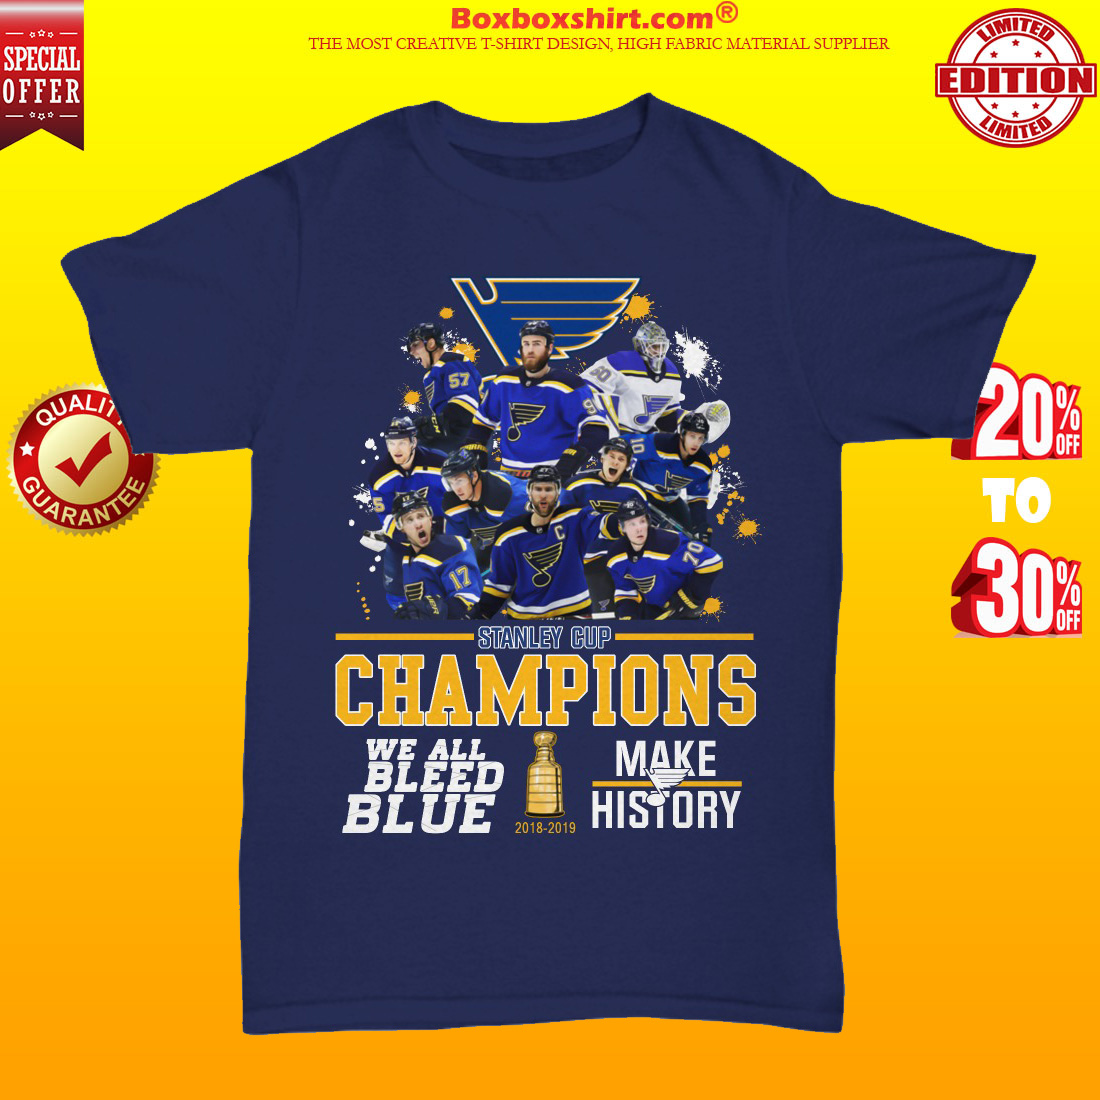 Stanley cup champions we all bleed blue make history unisex tee shirt